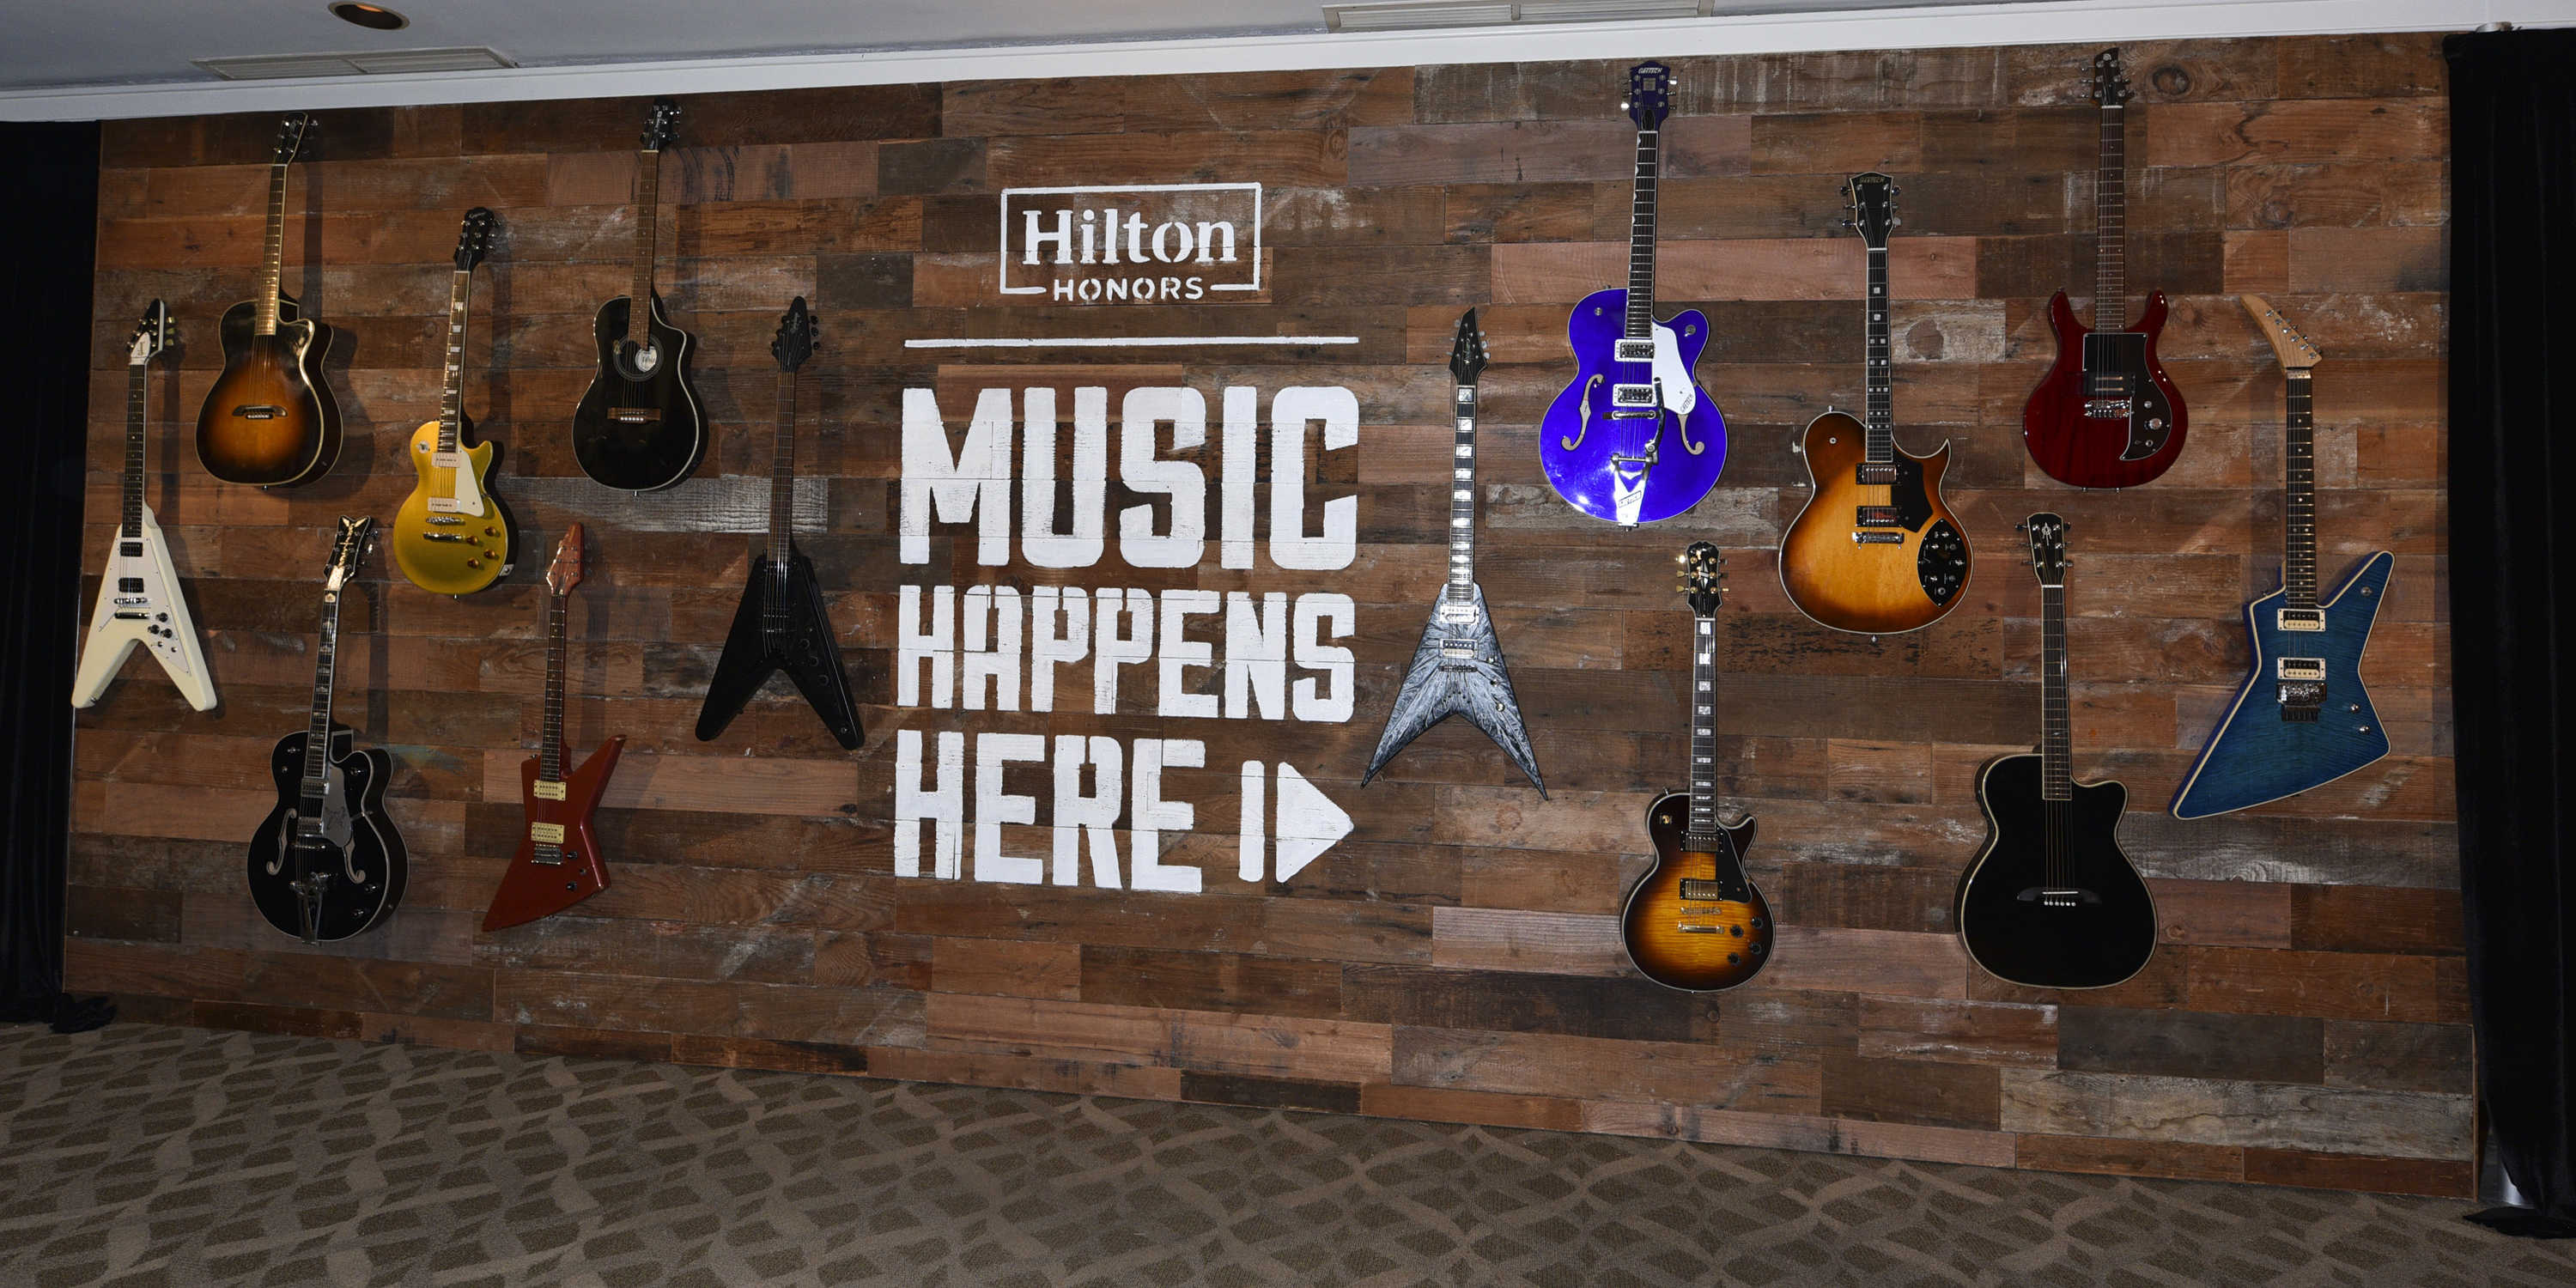 hilton honors experiences